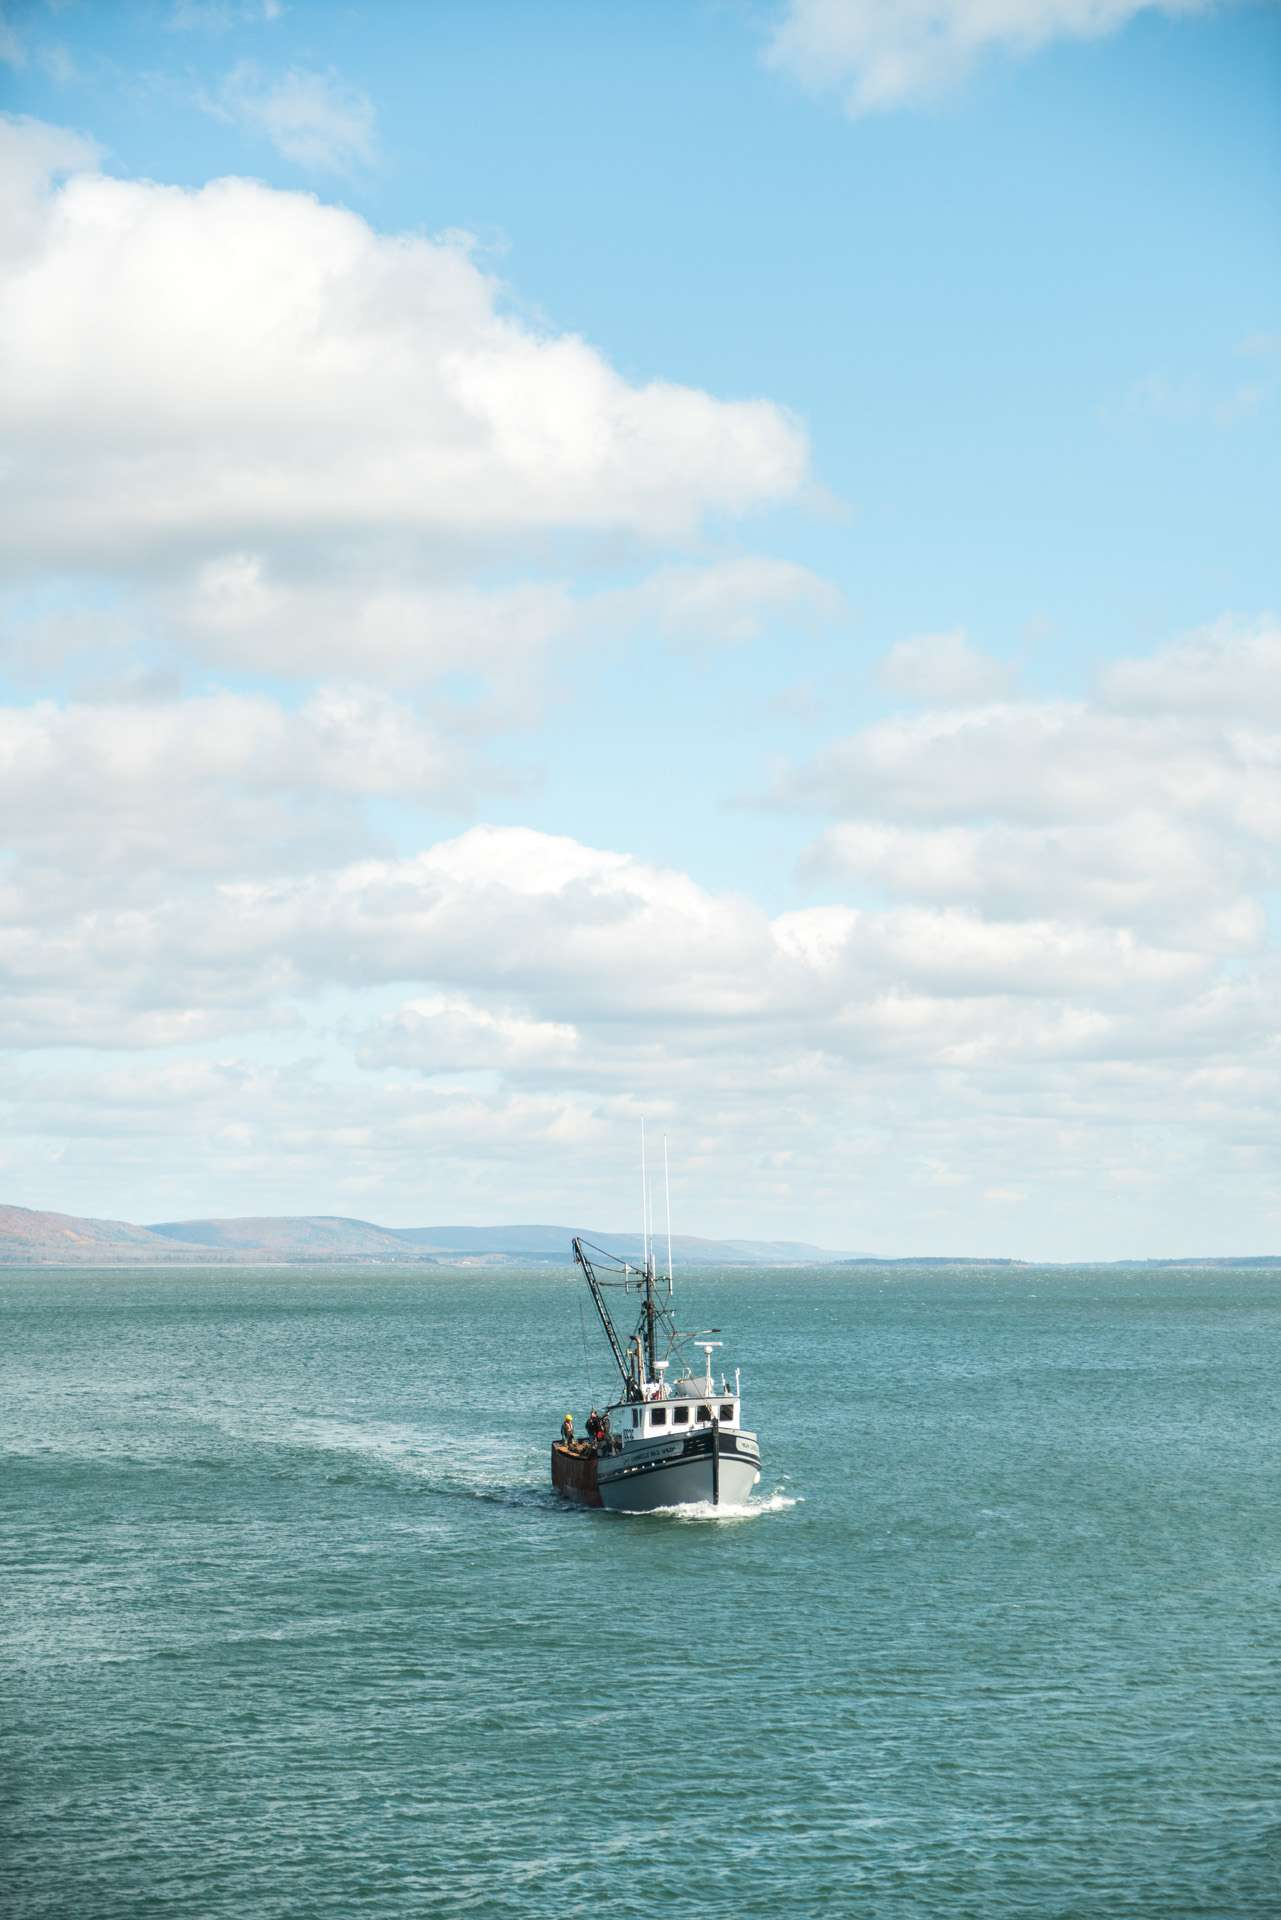 fishing boat in the ocean by Bruno Florin for Ricardo Magazine in Bay of Fundy